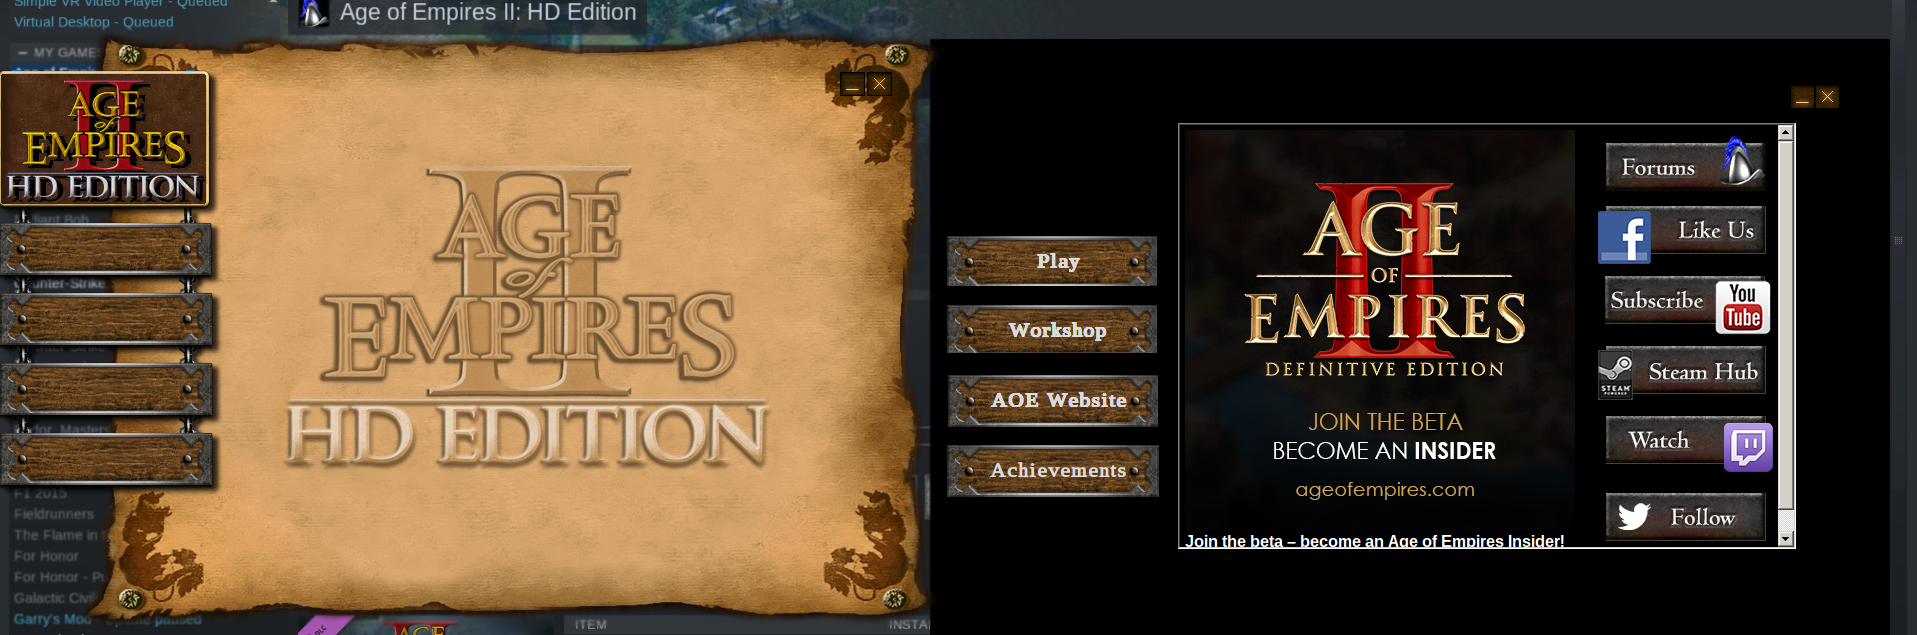 Age of Empires 2 HD (221380) · Issue #72 · ValveSoftware